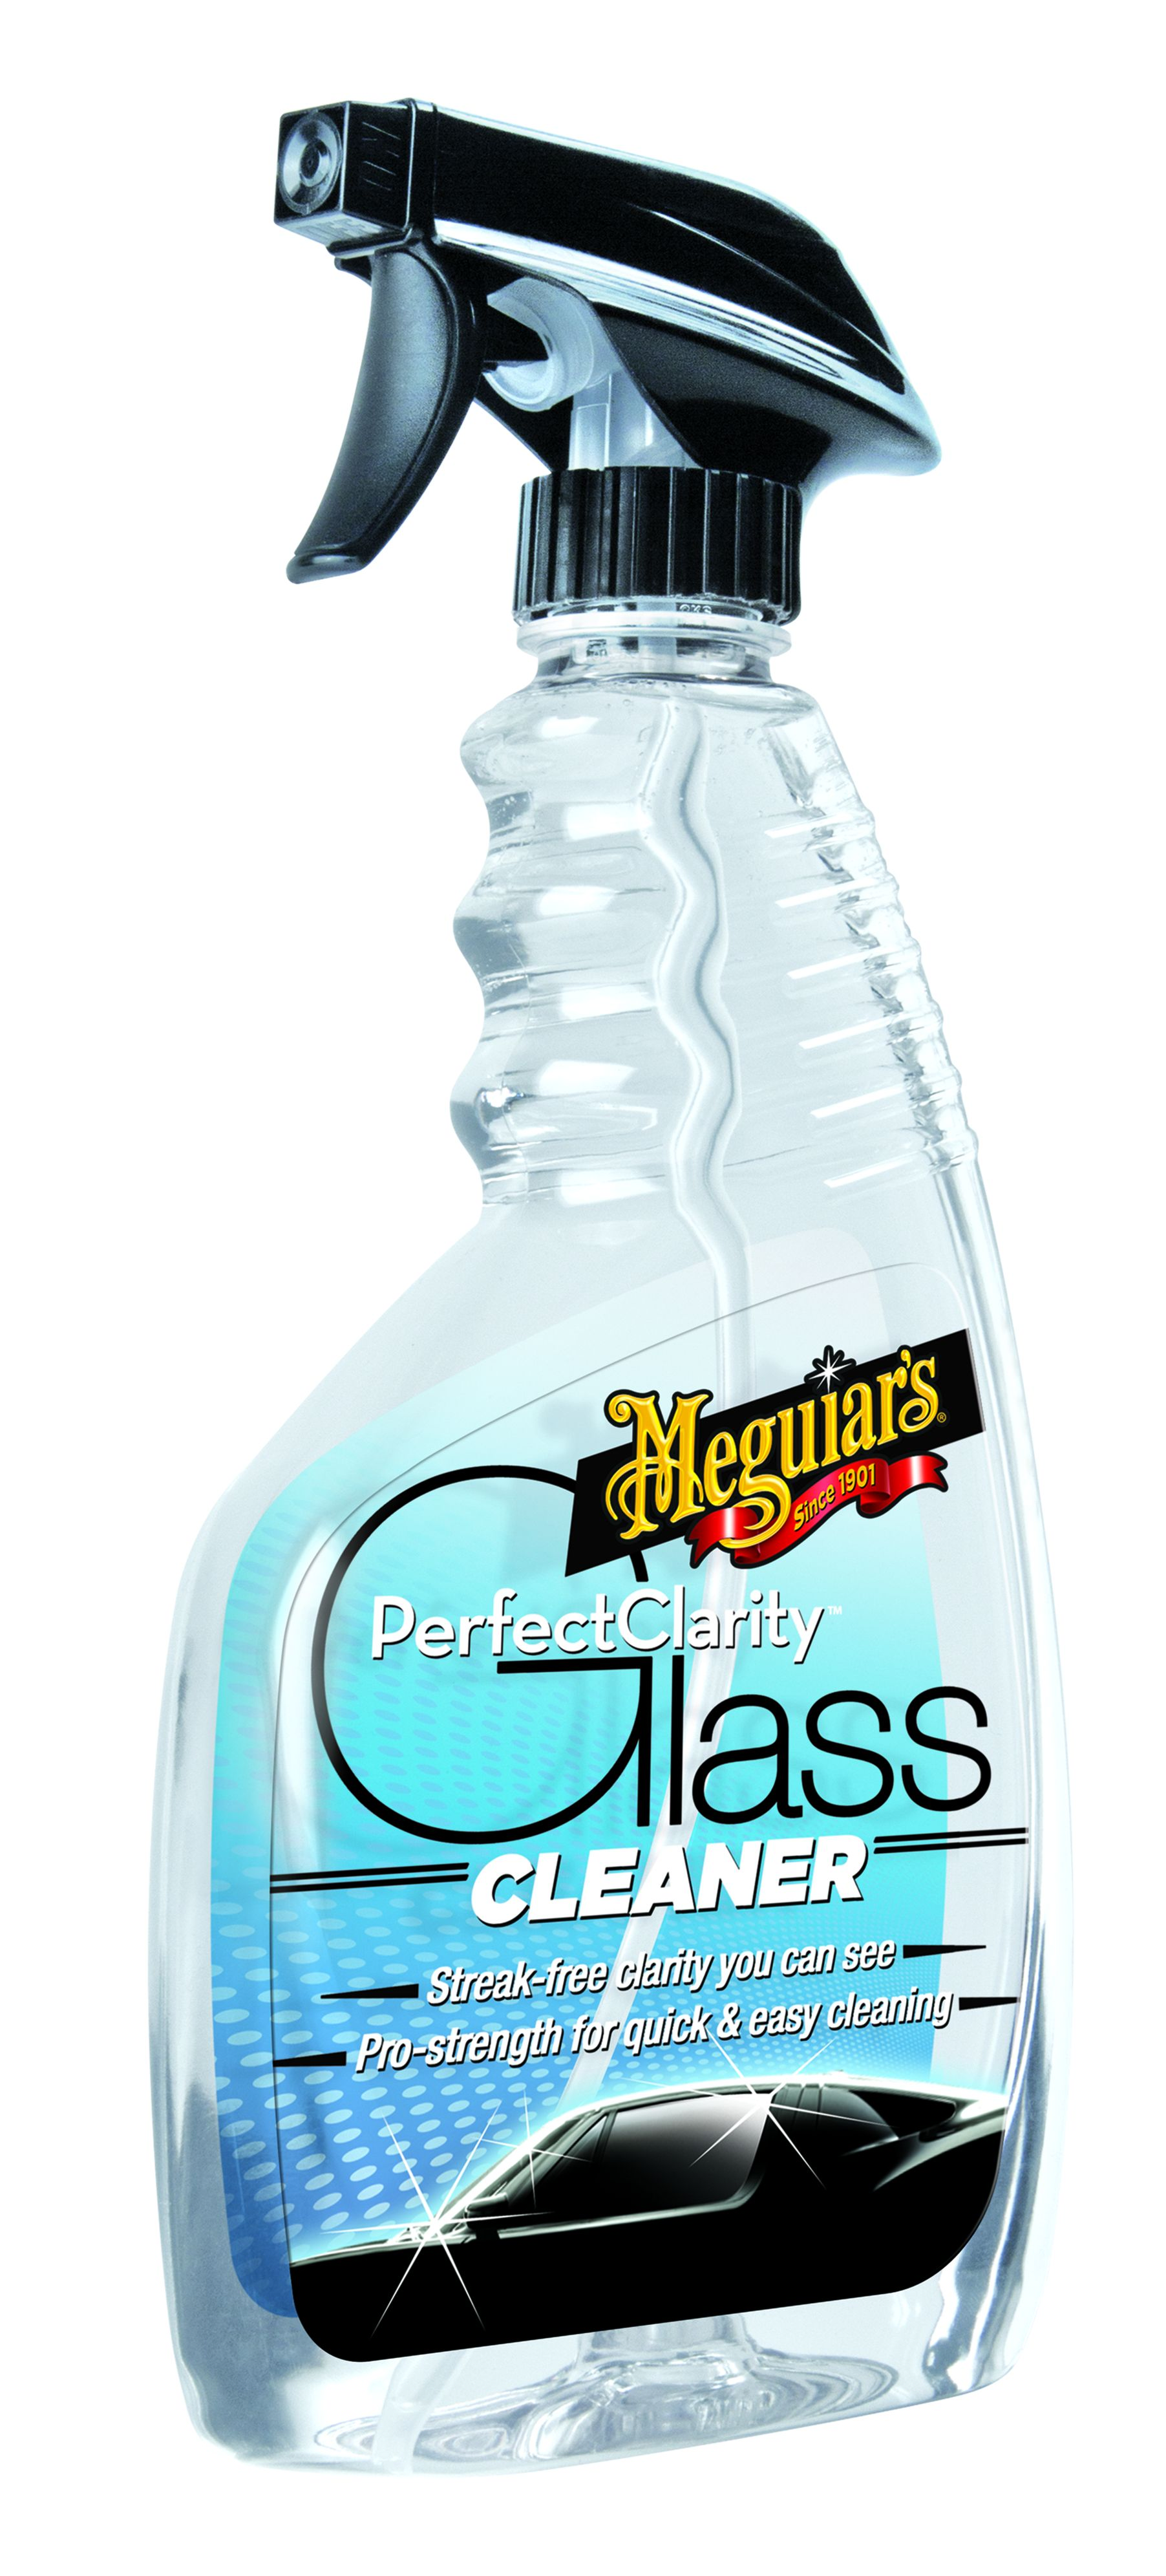 G8224 Meguiars Glass Cleaner Interior/ Exterior Use